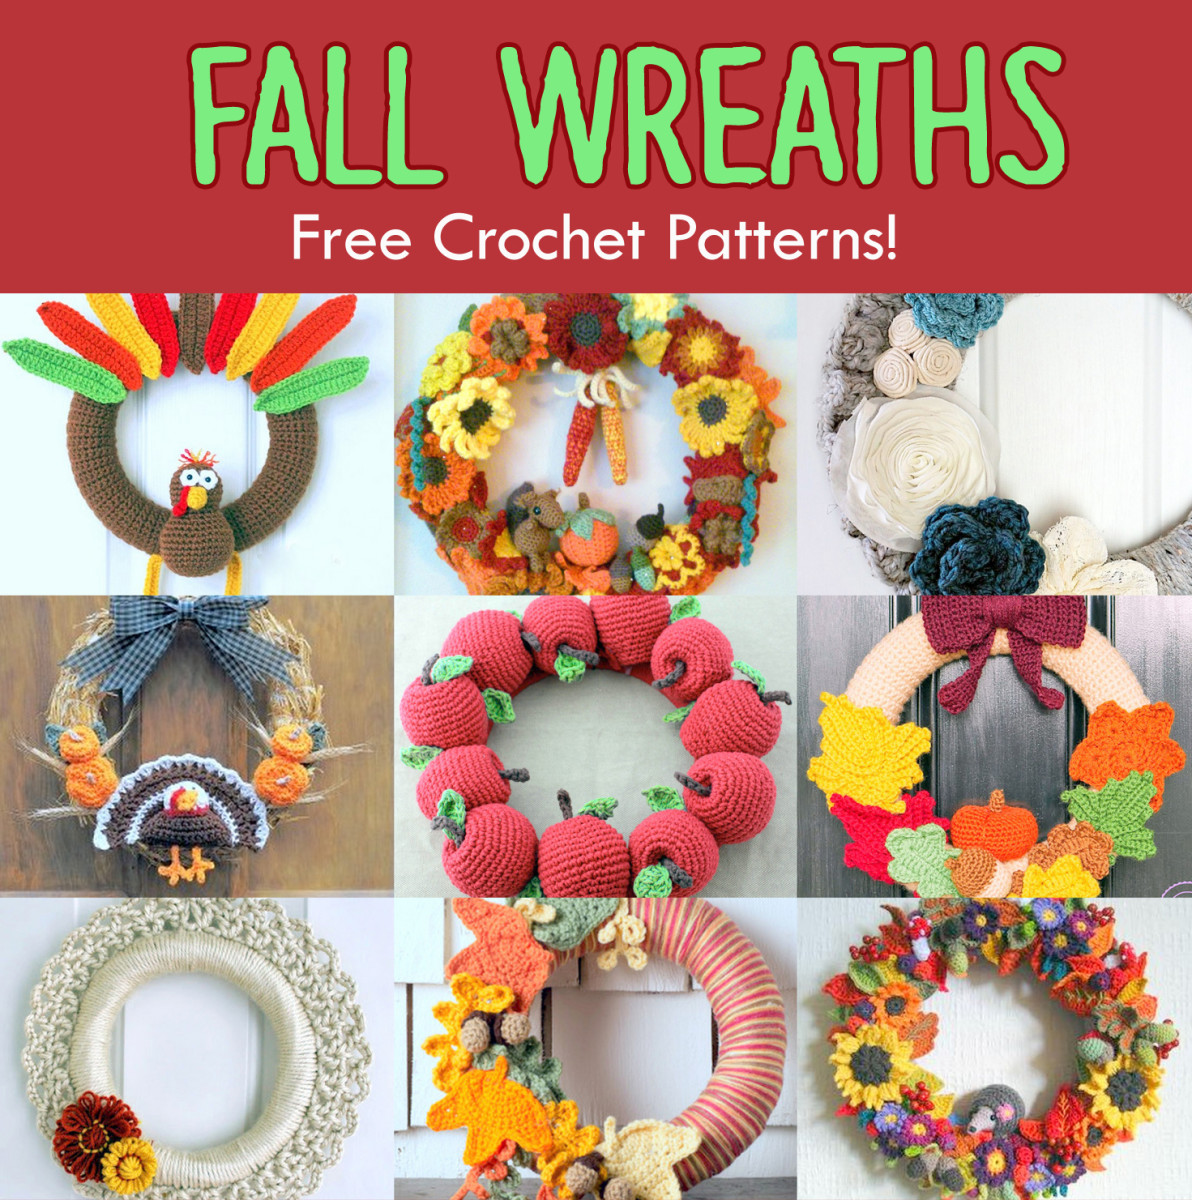 11 Free Fall & Thanksgiving Wreaths Crochet Patterns